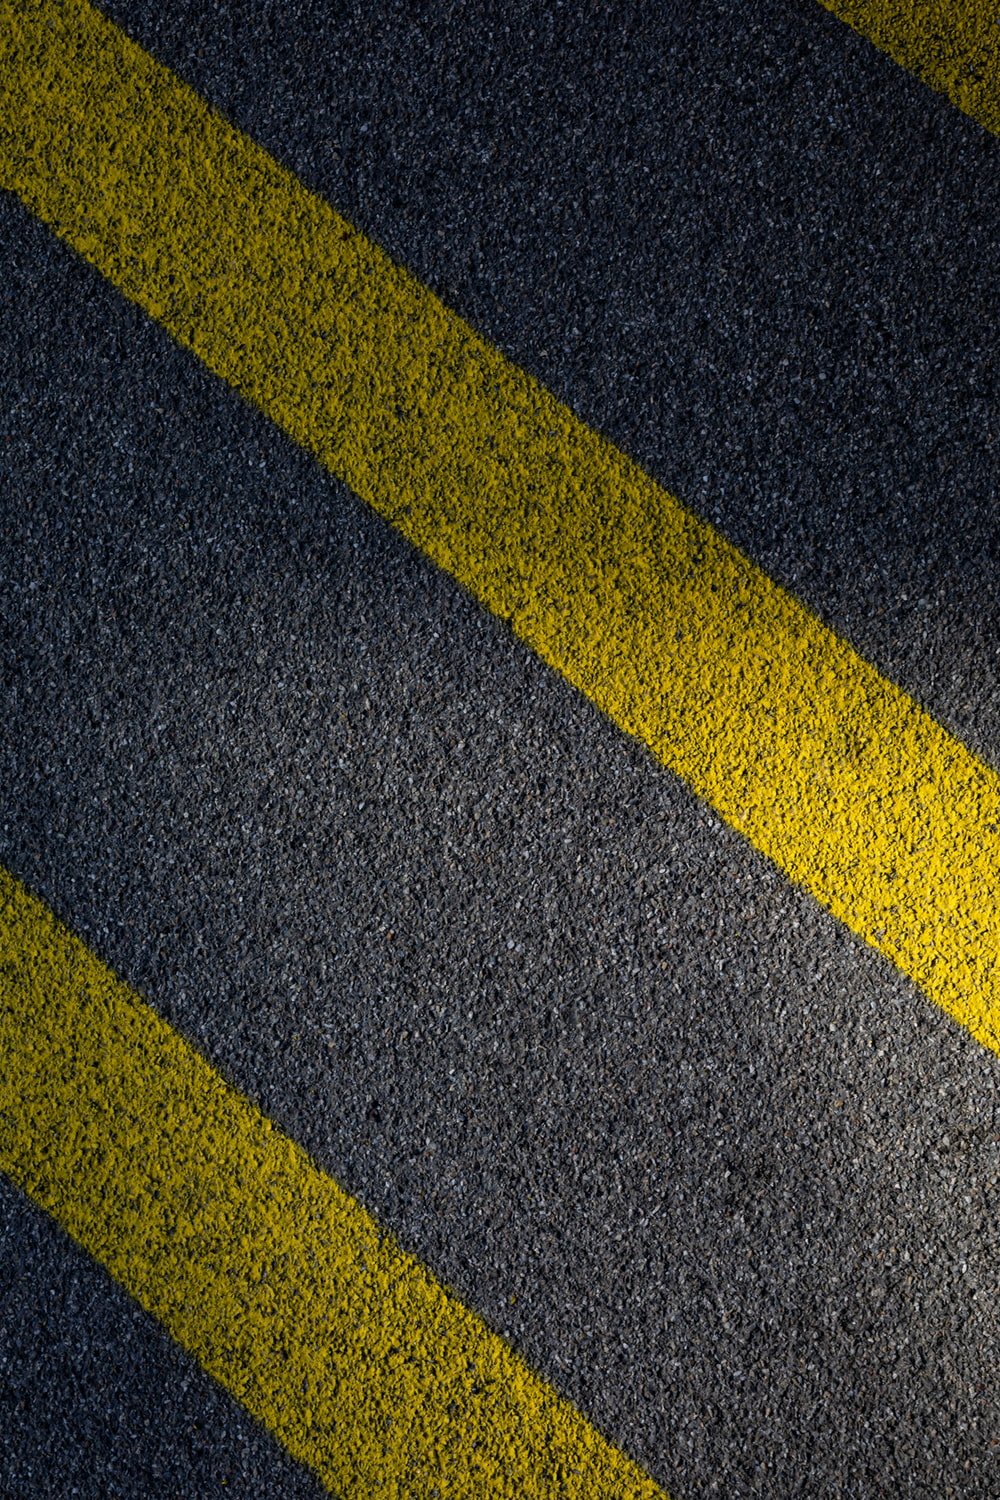 black and yellow line on gray concrete pavement